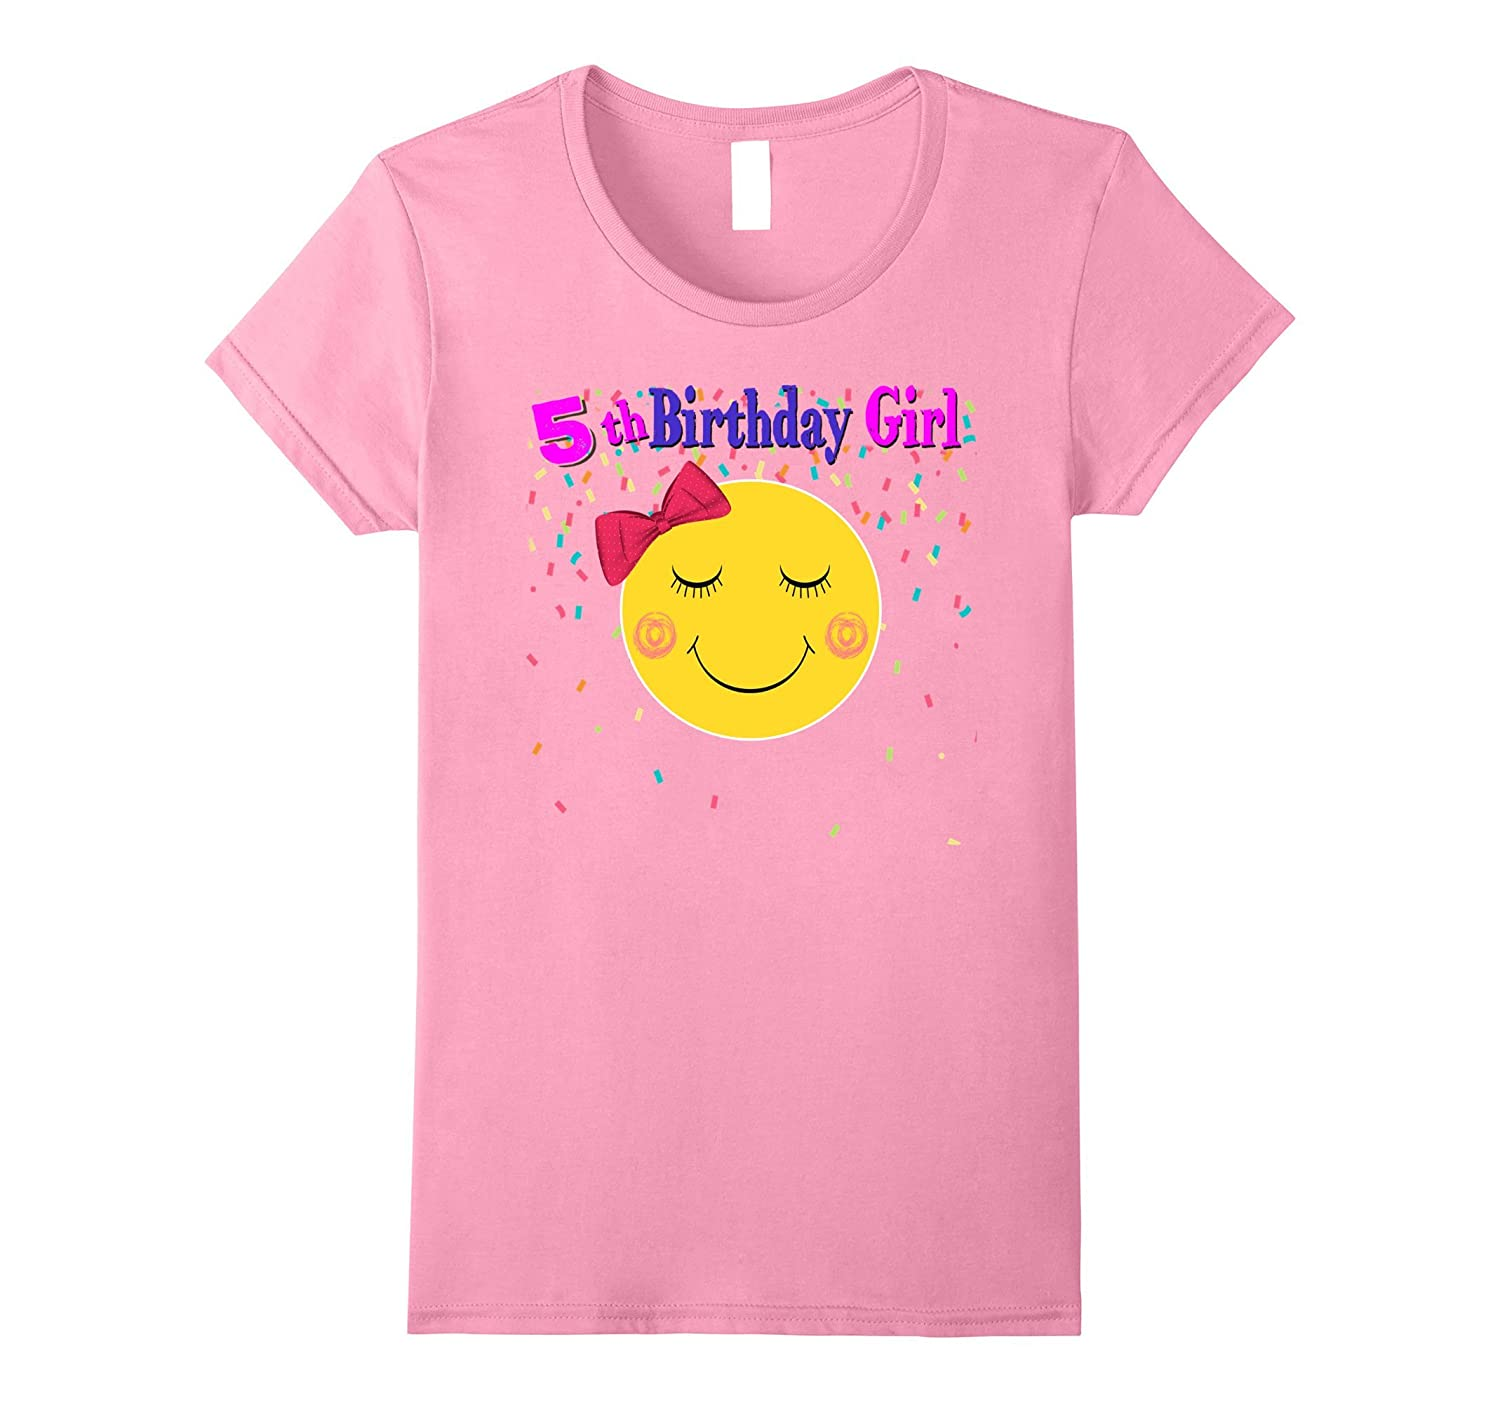 5th Birthday Girl Shirt Cute Emoji Birthday T shirt-Art